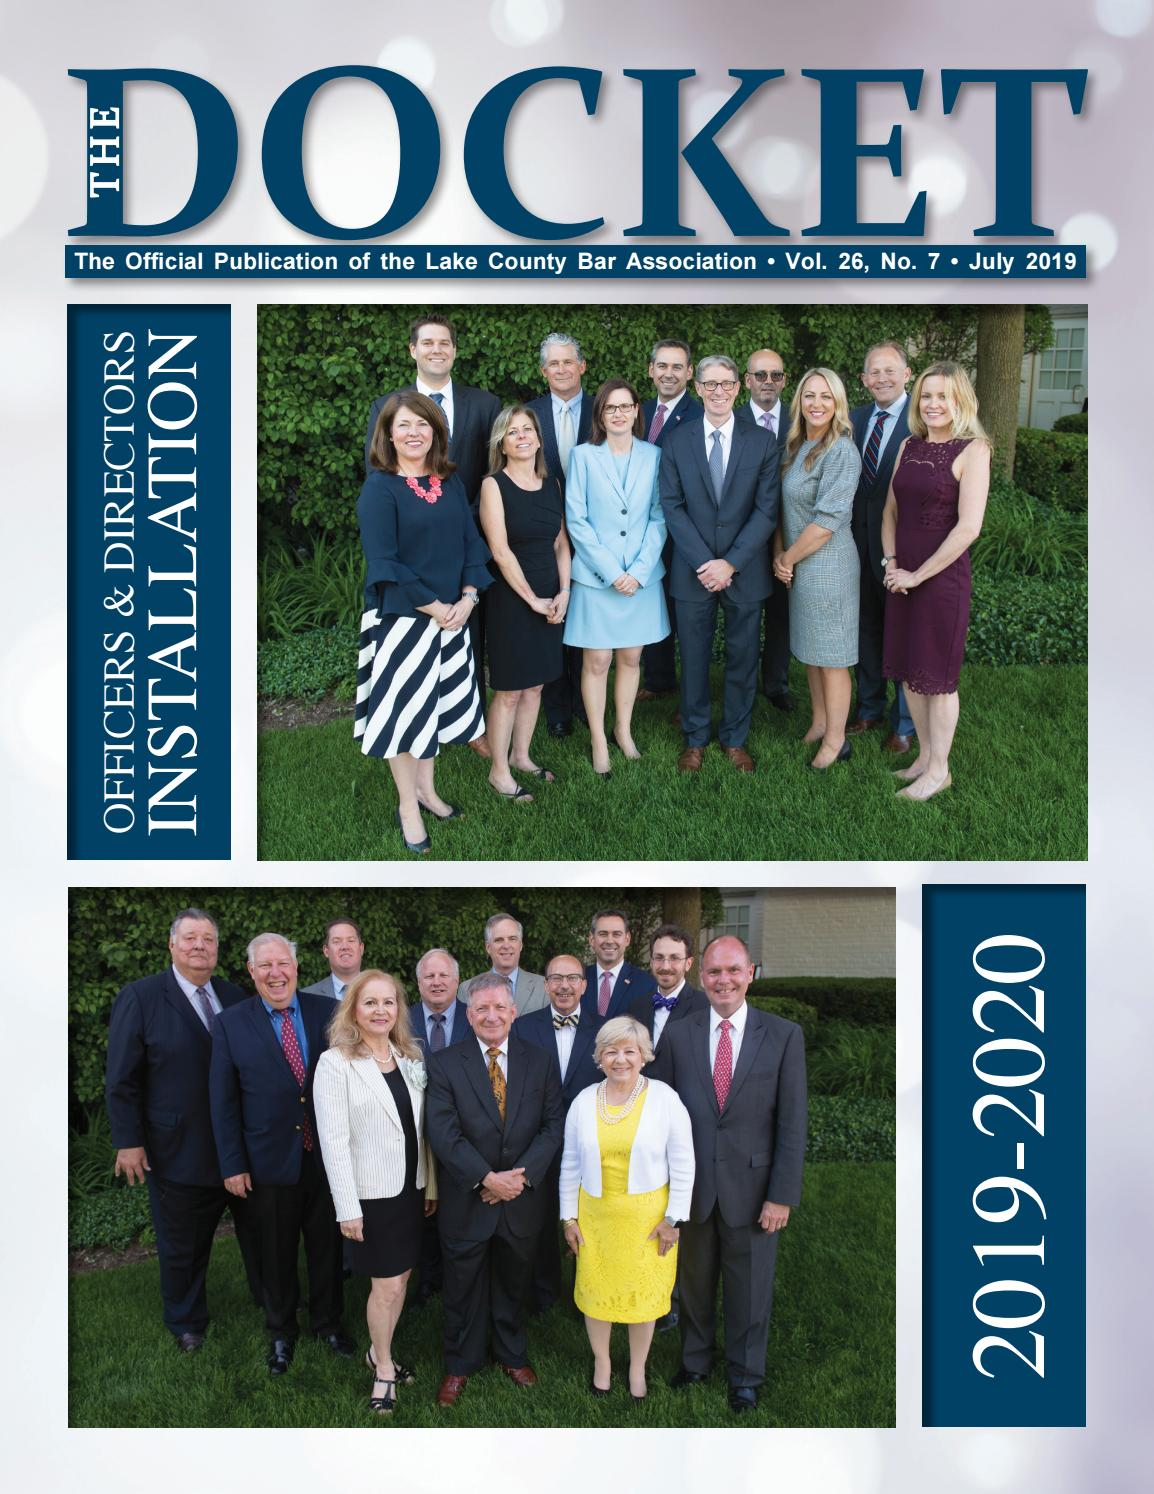 The Docket - July 2019 by Town Square Publications by Town